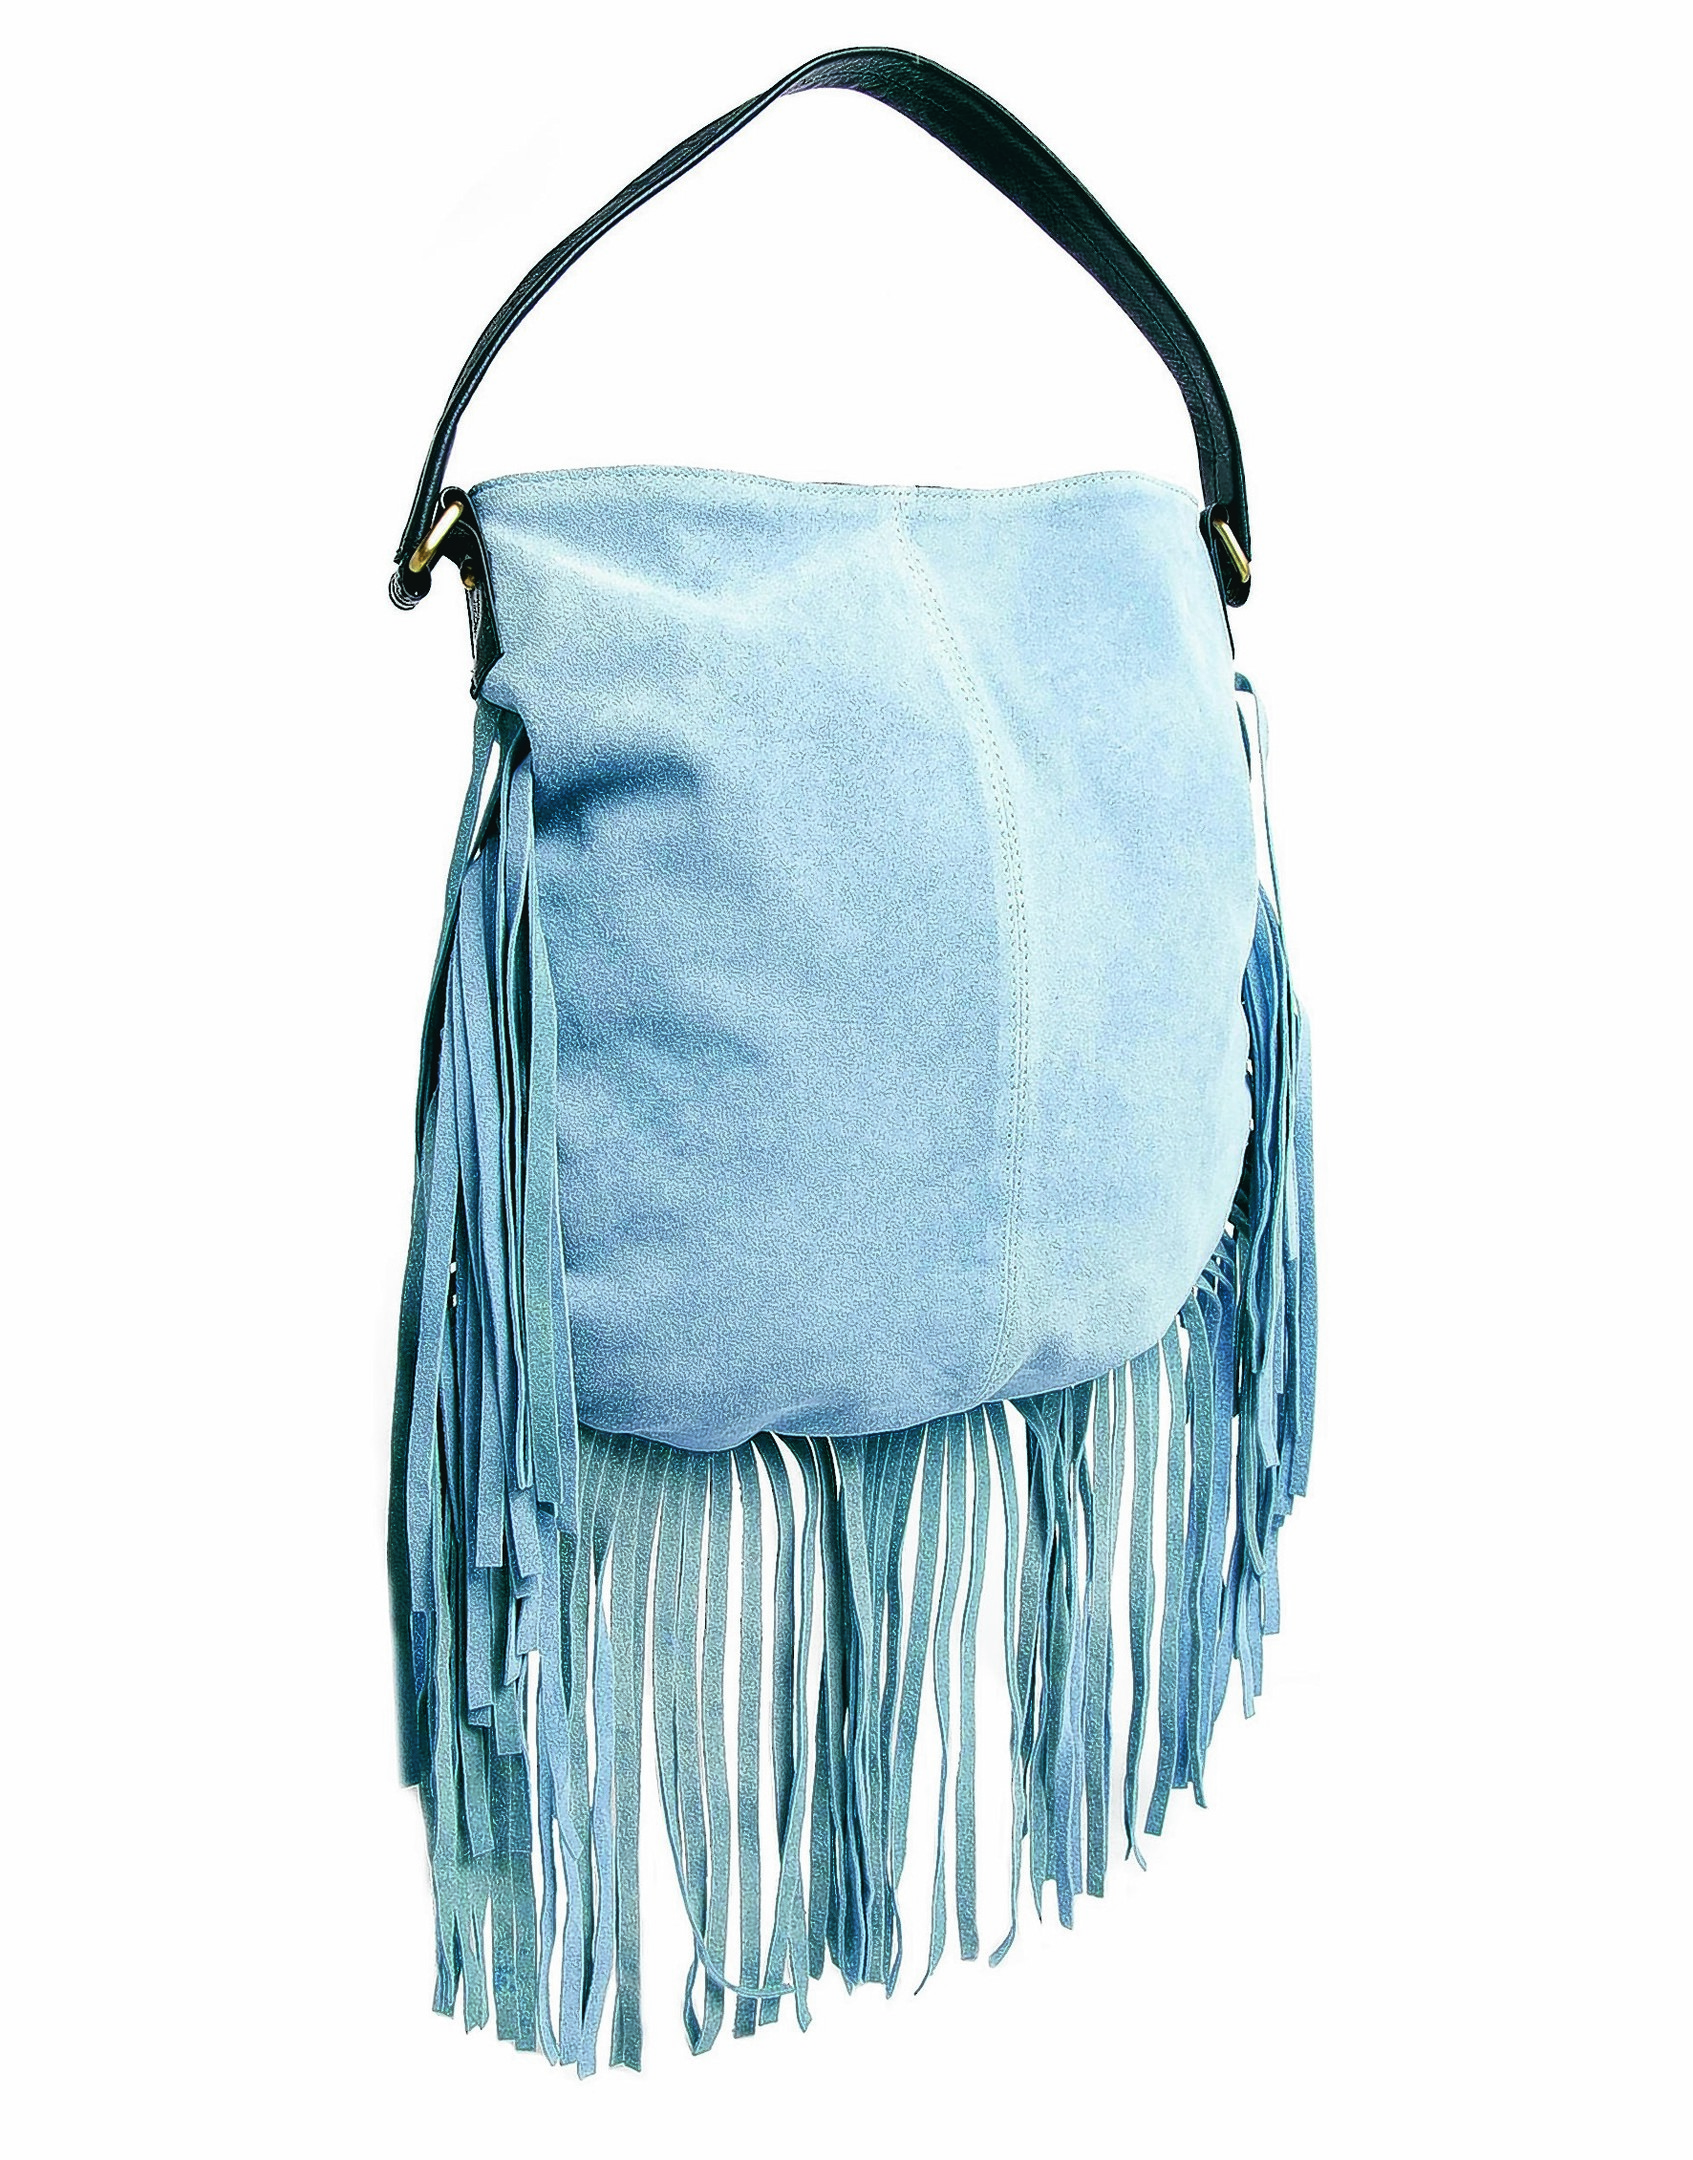 ASOS Suede Fringe Shoulder Bag.